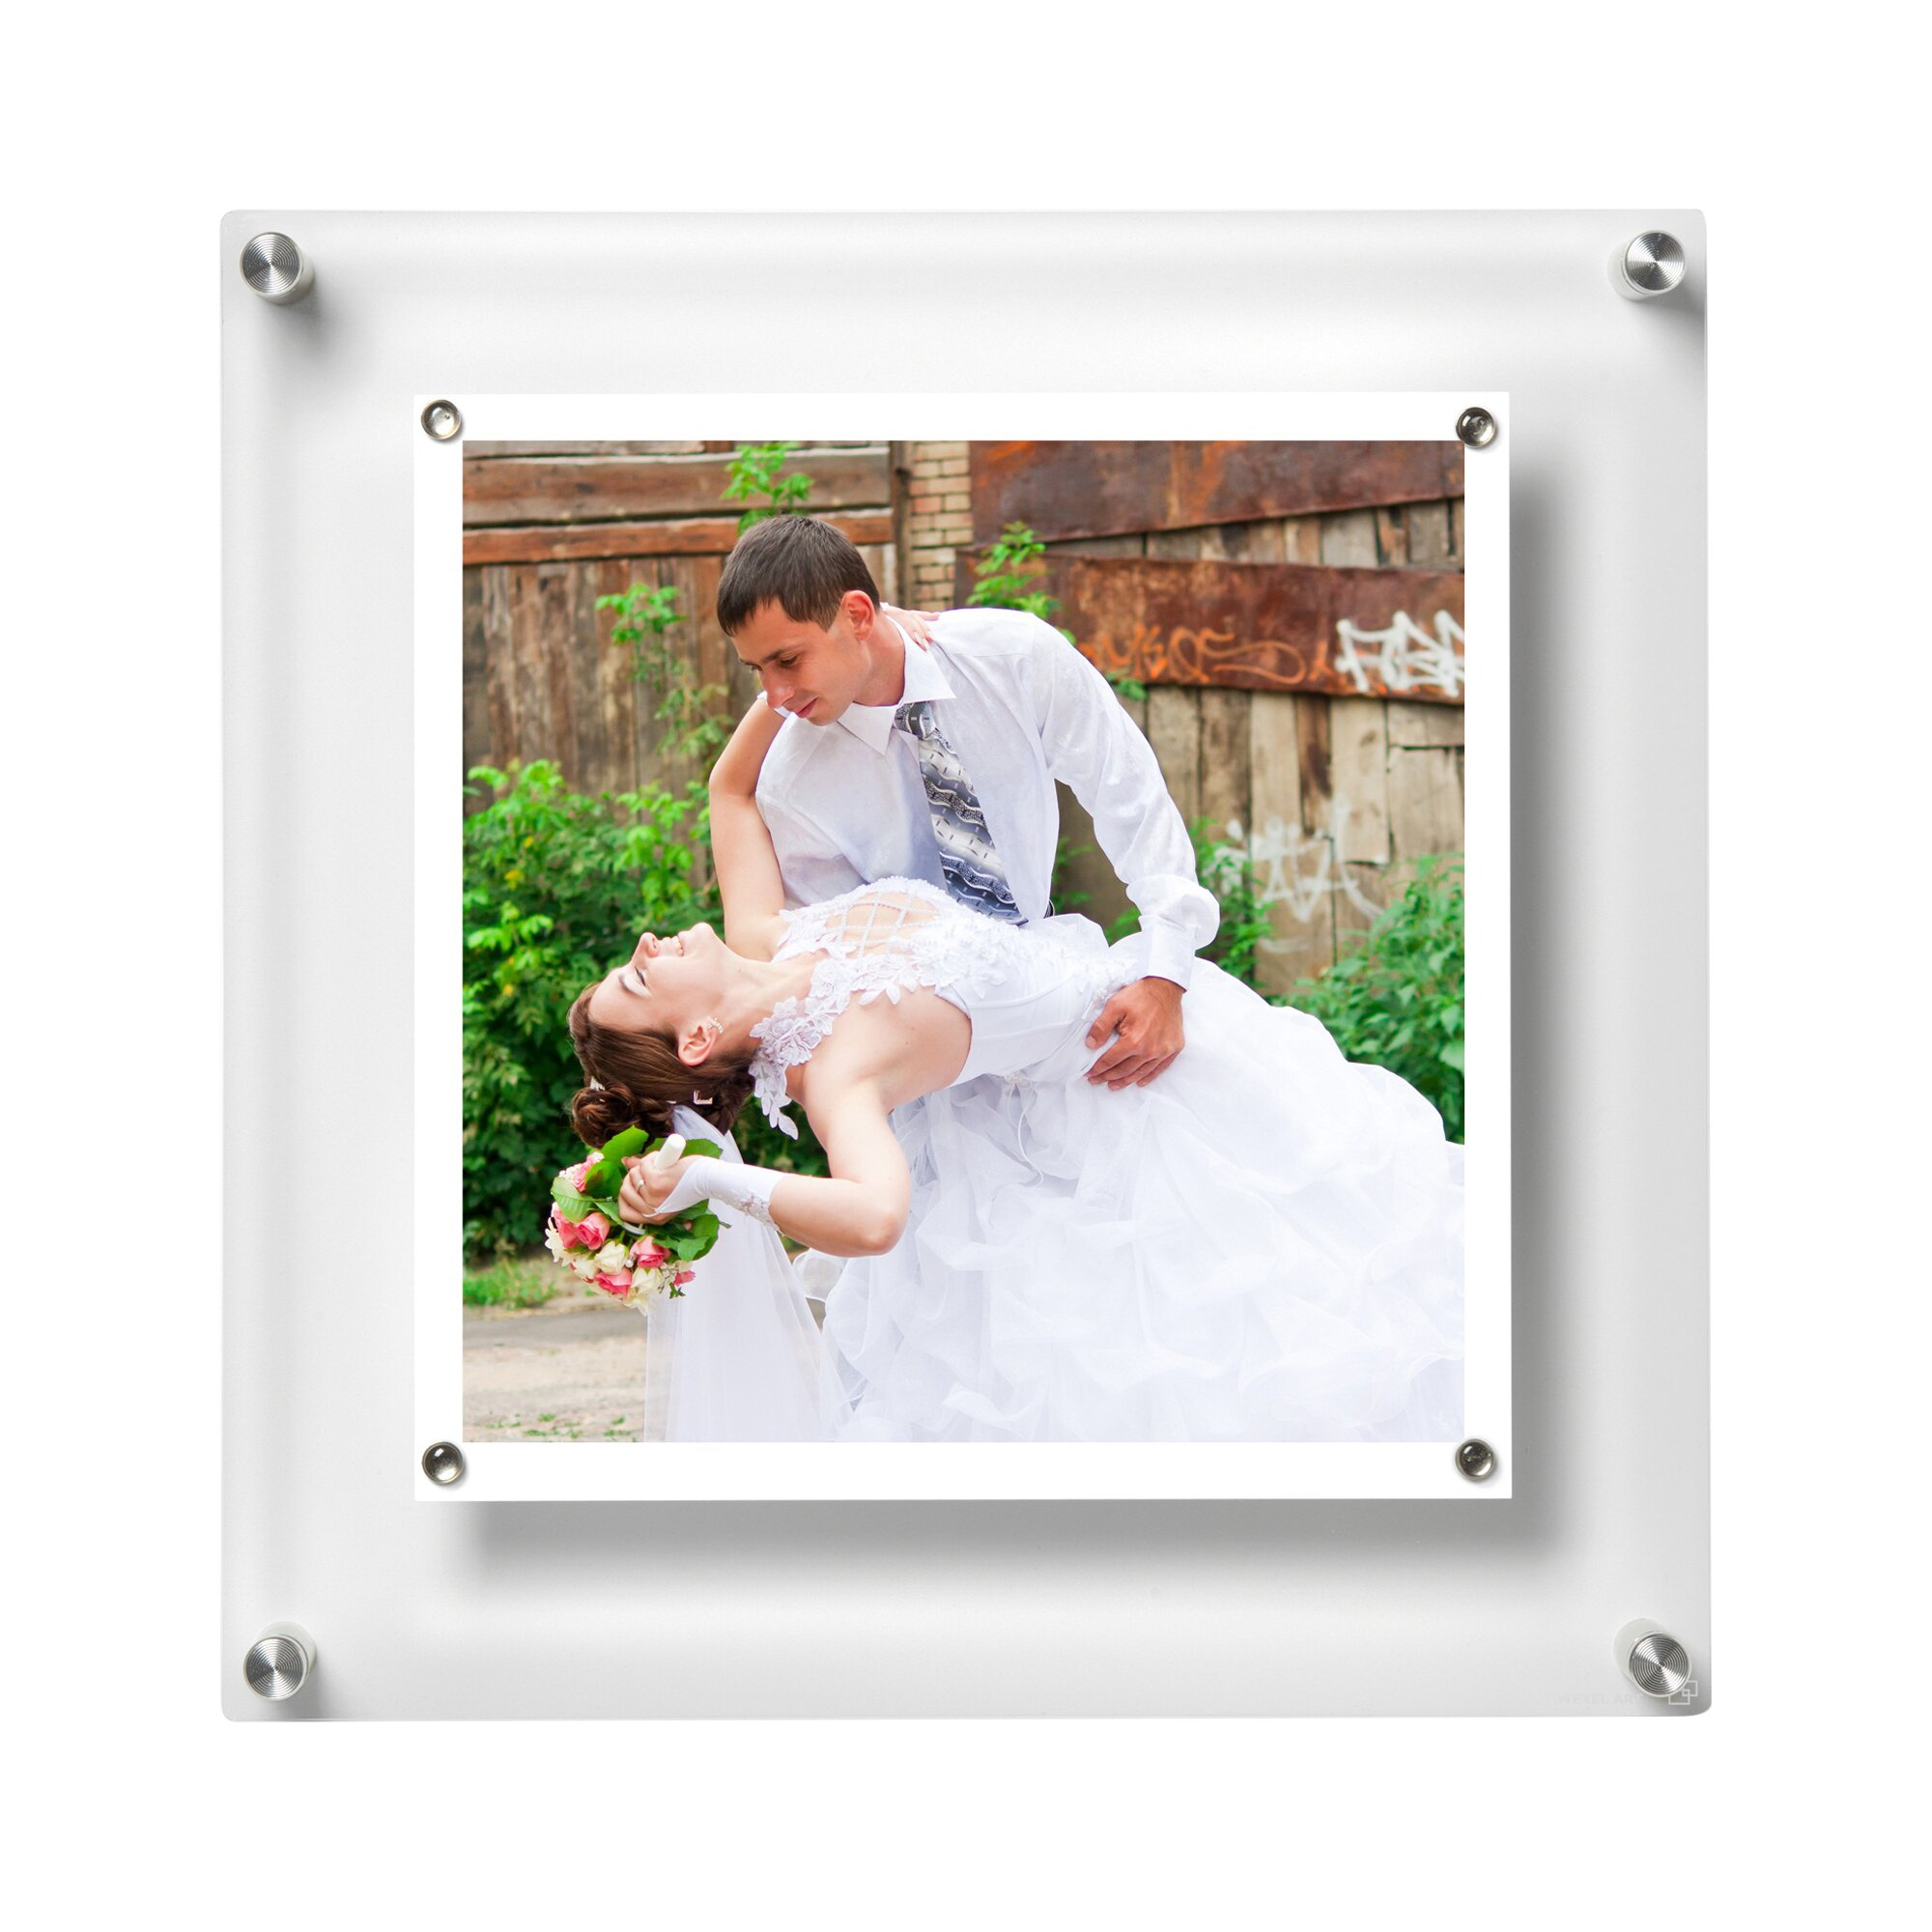 wexel art besquare floating picture frame